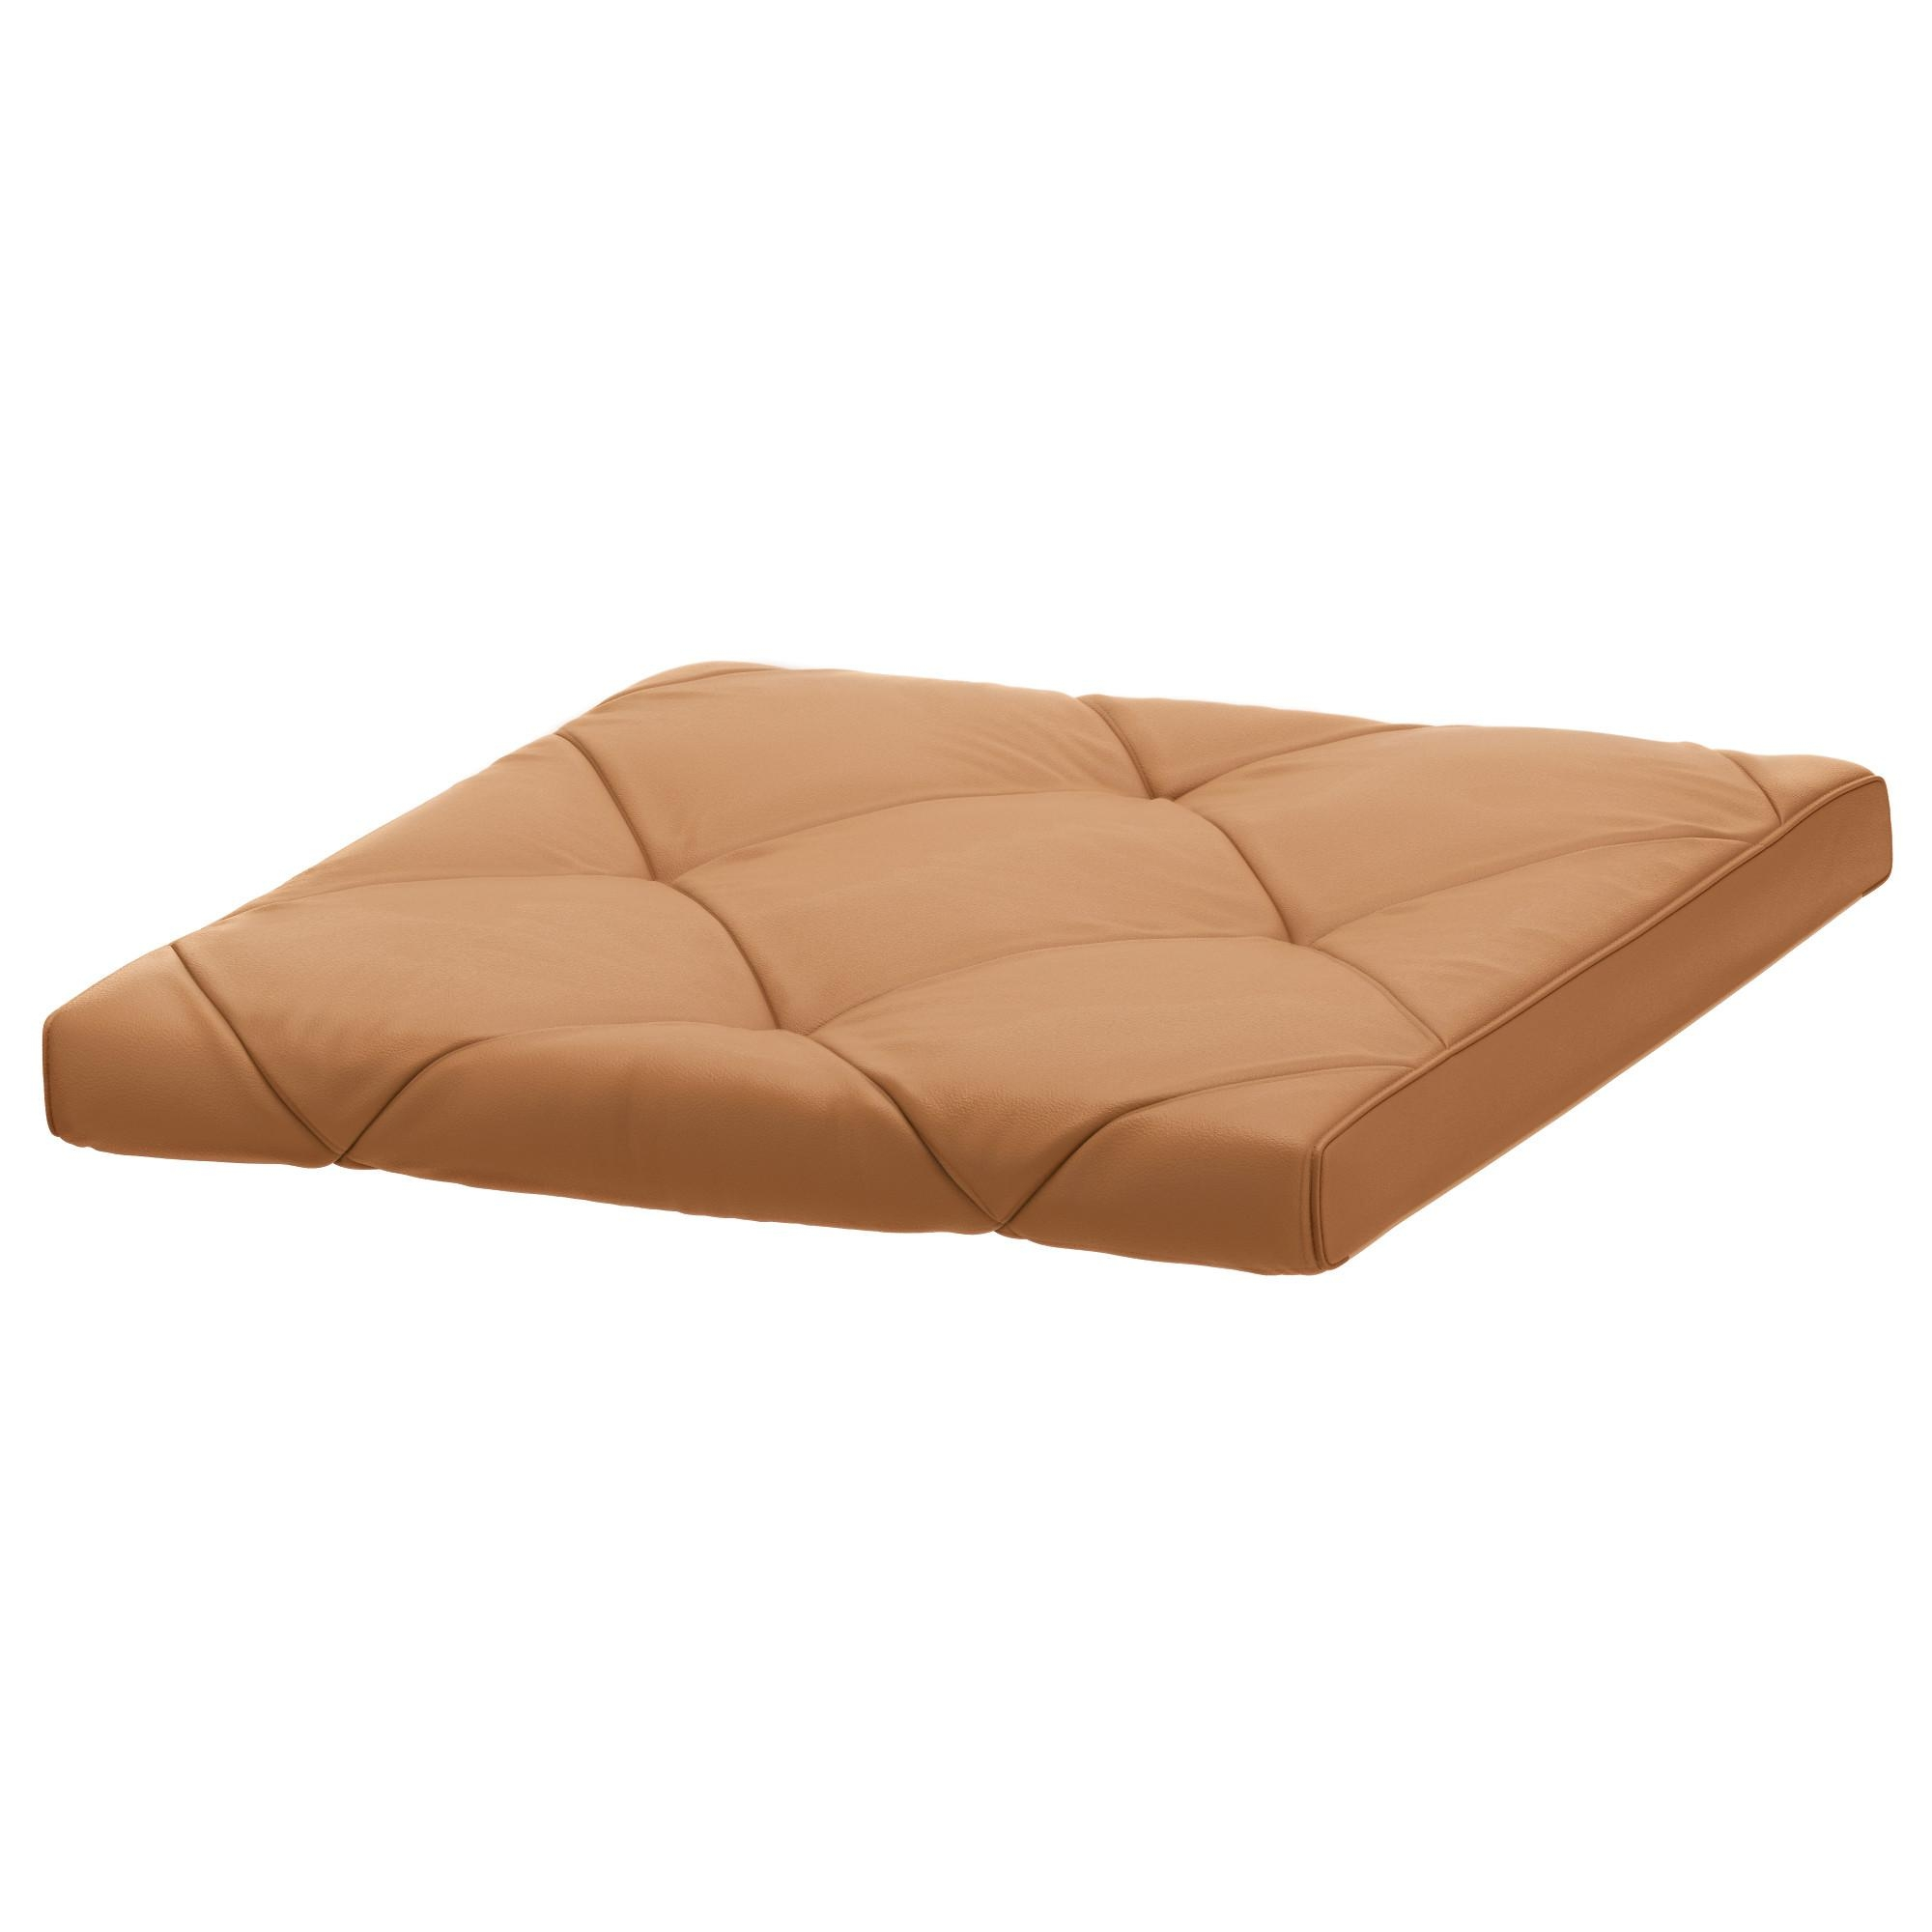 Sofa Covers – Ikea Pertaining To Slipcovers For 3 Cushion Sofas (Image 12 of 20)